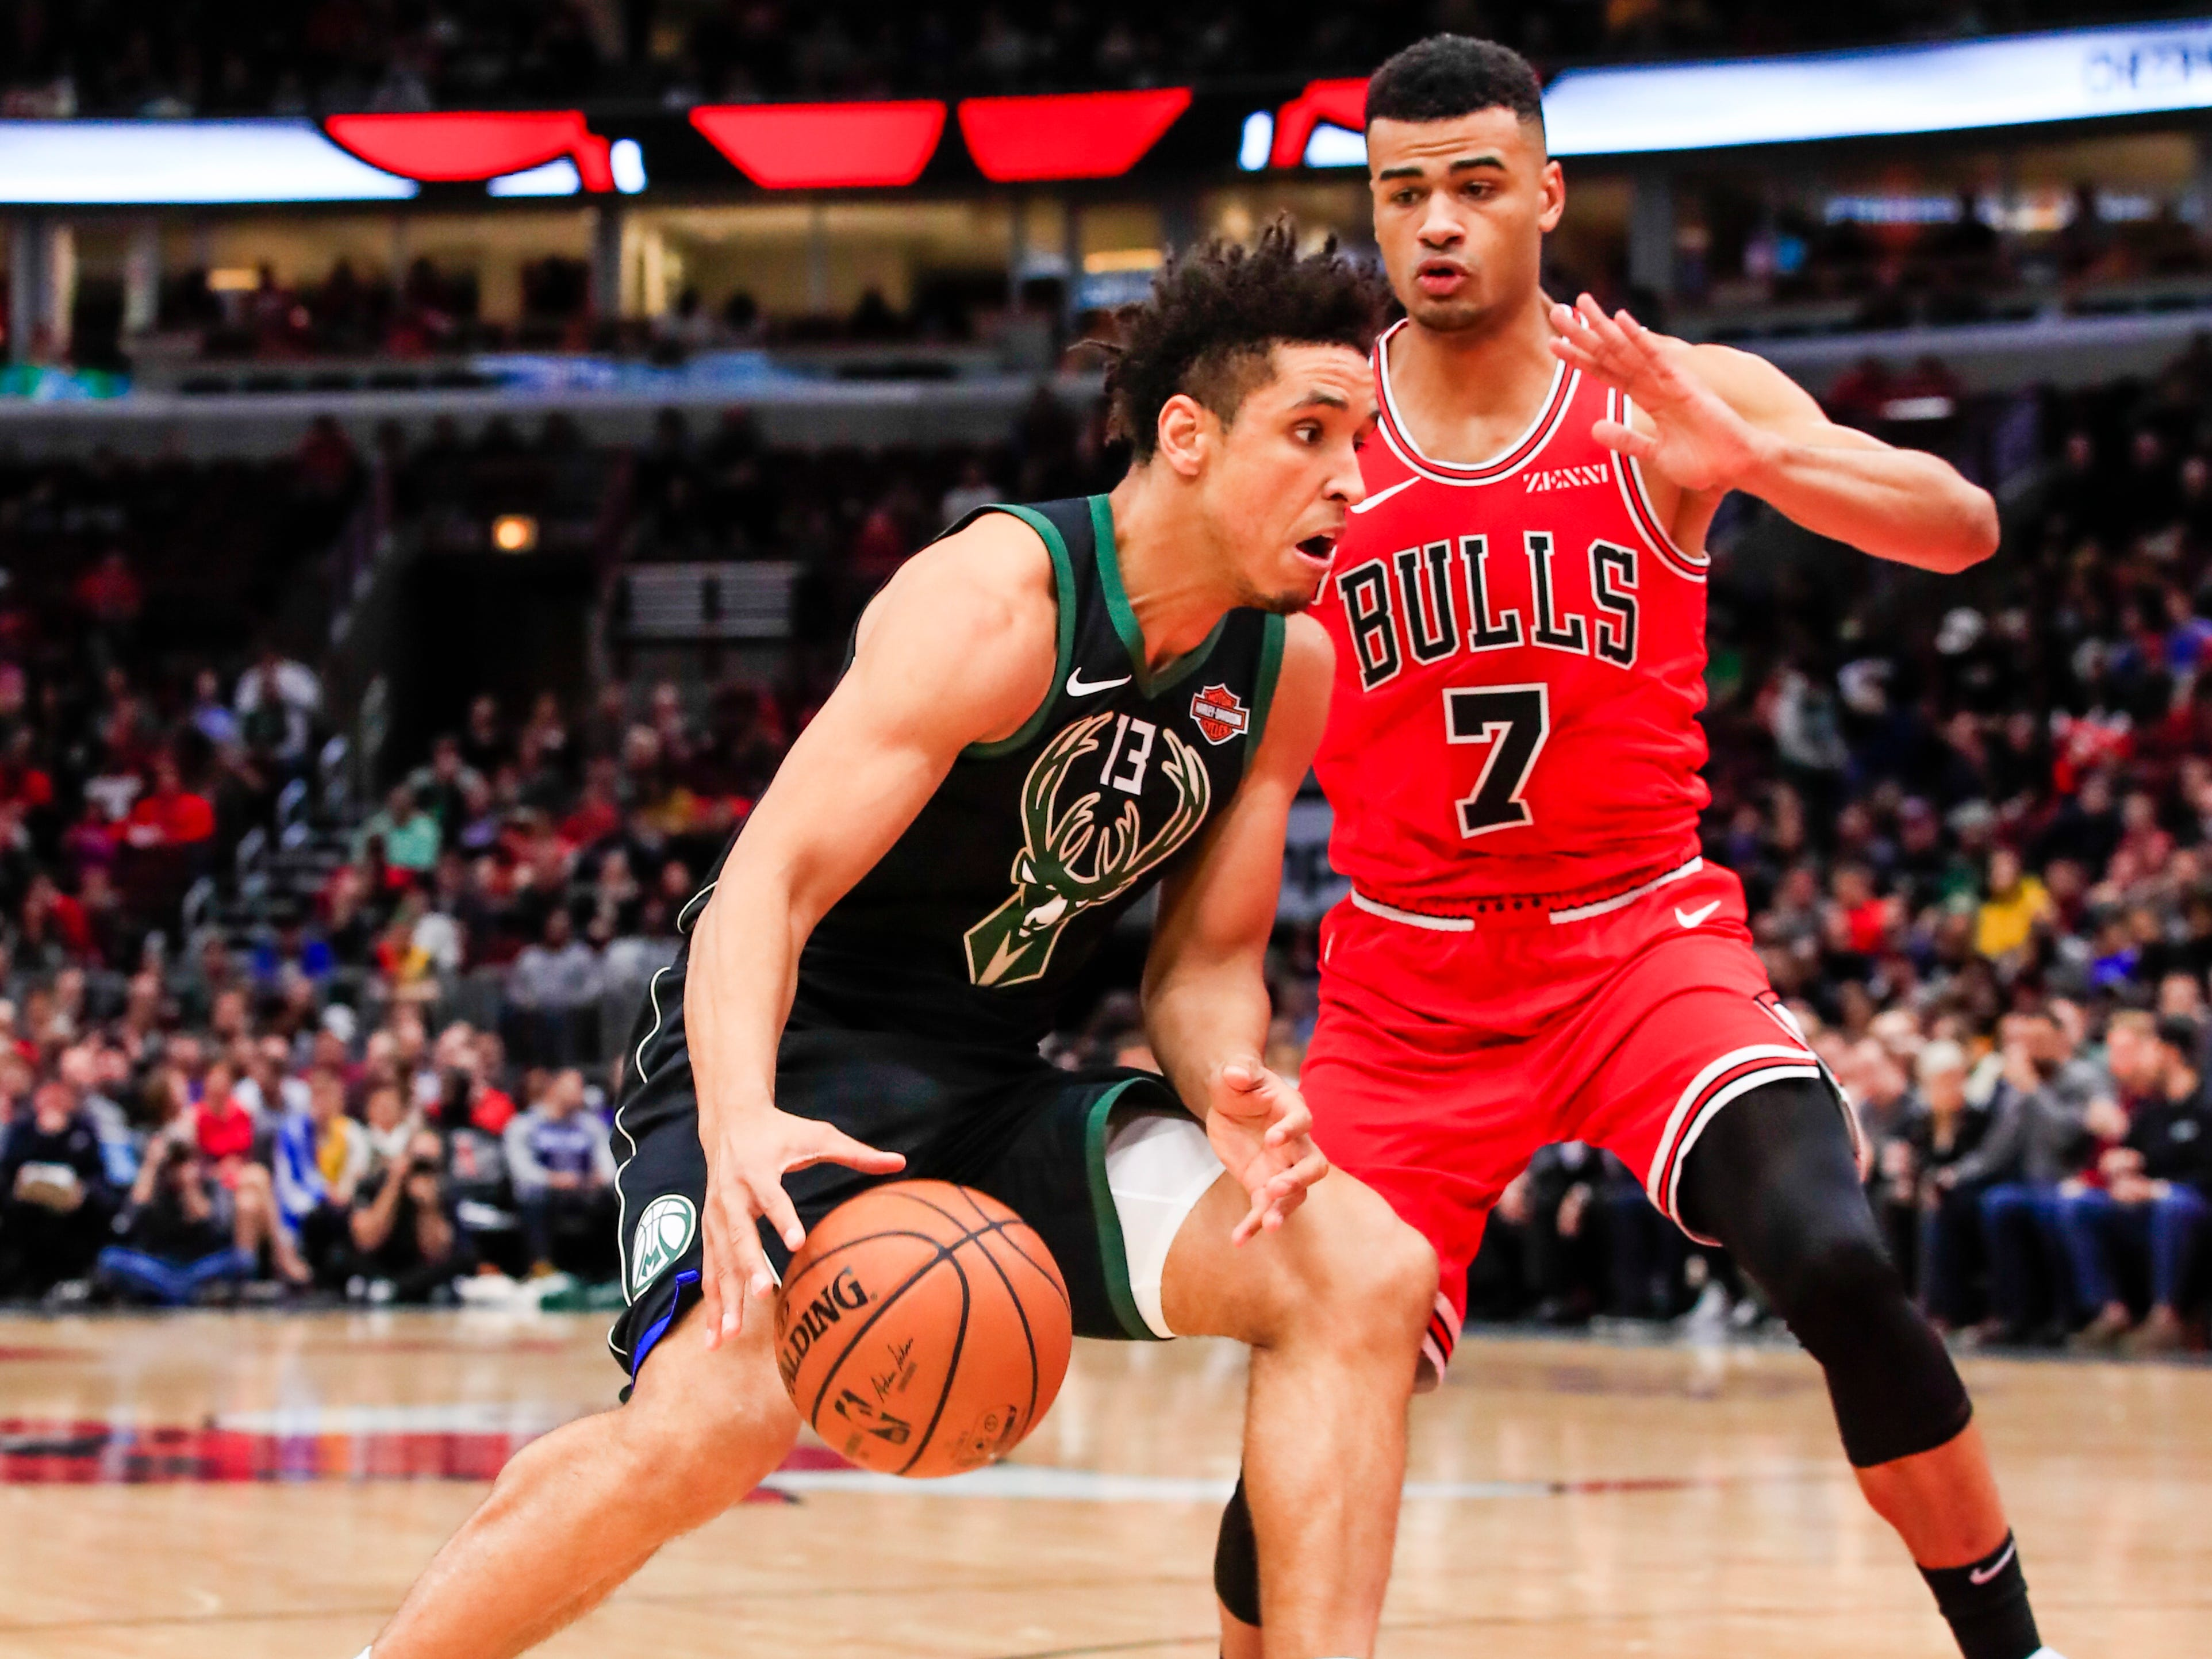 Bucks guard Malcolm Brogdon drives on Bulls guard Timothe Luwawu-Cabarrot on Monday night.